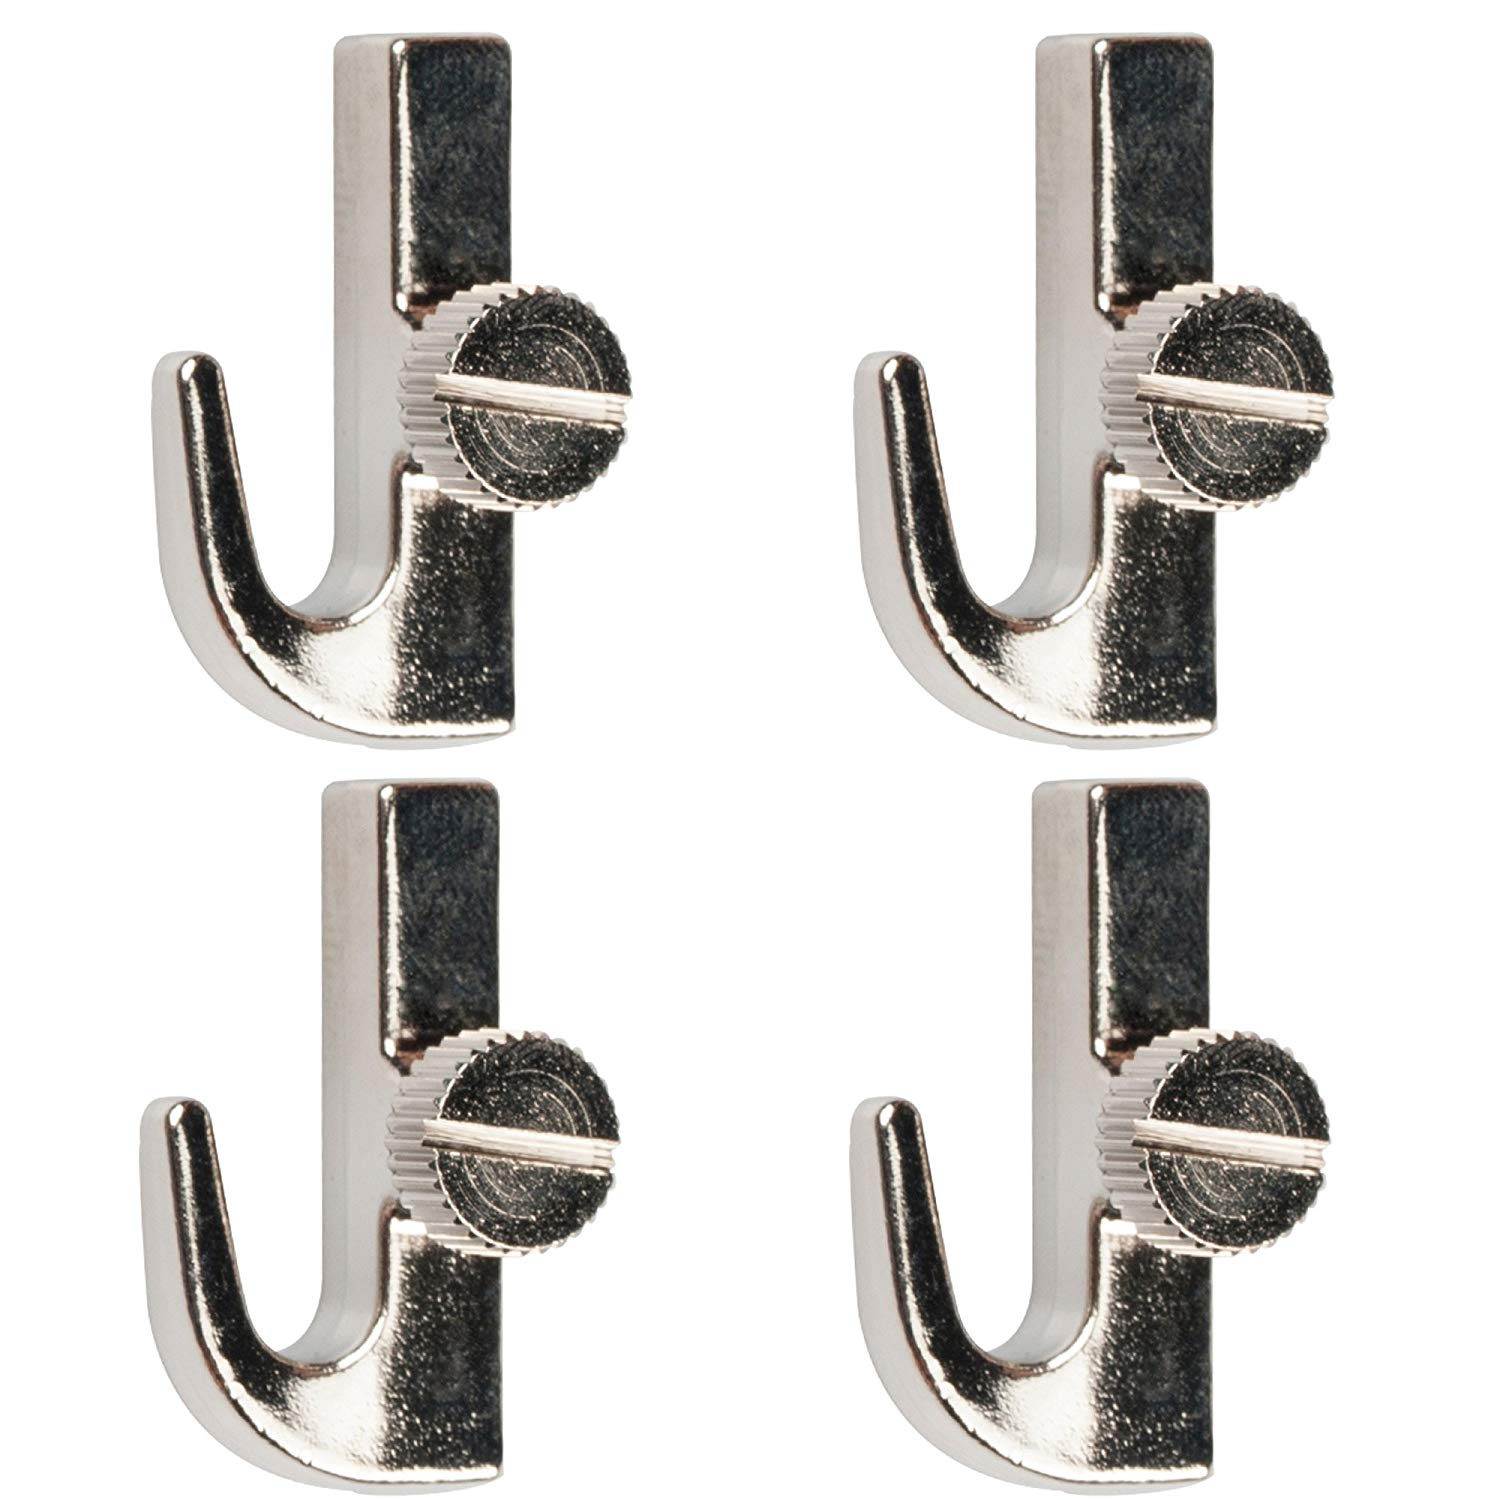 Adjustable Picture Hanging Cable Hooks, Side Tightening Hooks, zinc Alloy,Silver,Gallery Picture Frame Hanging Cable Hooks, Picture Hanging System Accessories,4 Pack